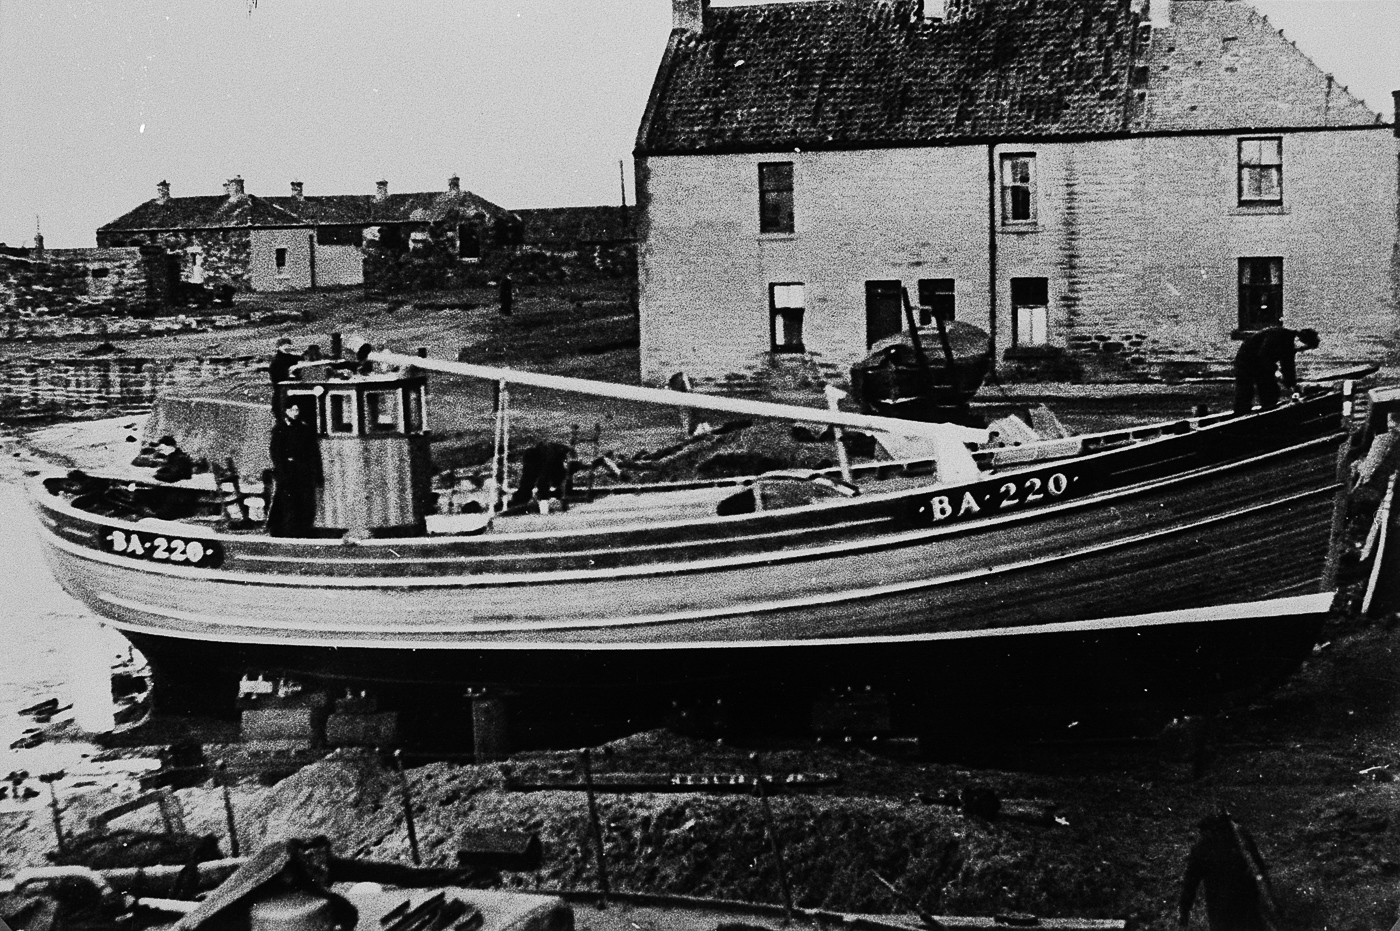 Ringnetter 'Aliped VII', BA220, being built at Weatherhead's yard, Cockenzie. She was commissioned by the McCrindle family of Girvan and was later sold to Carradale and renamed 'Amy Harris'.